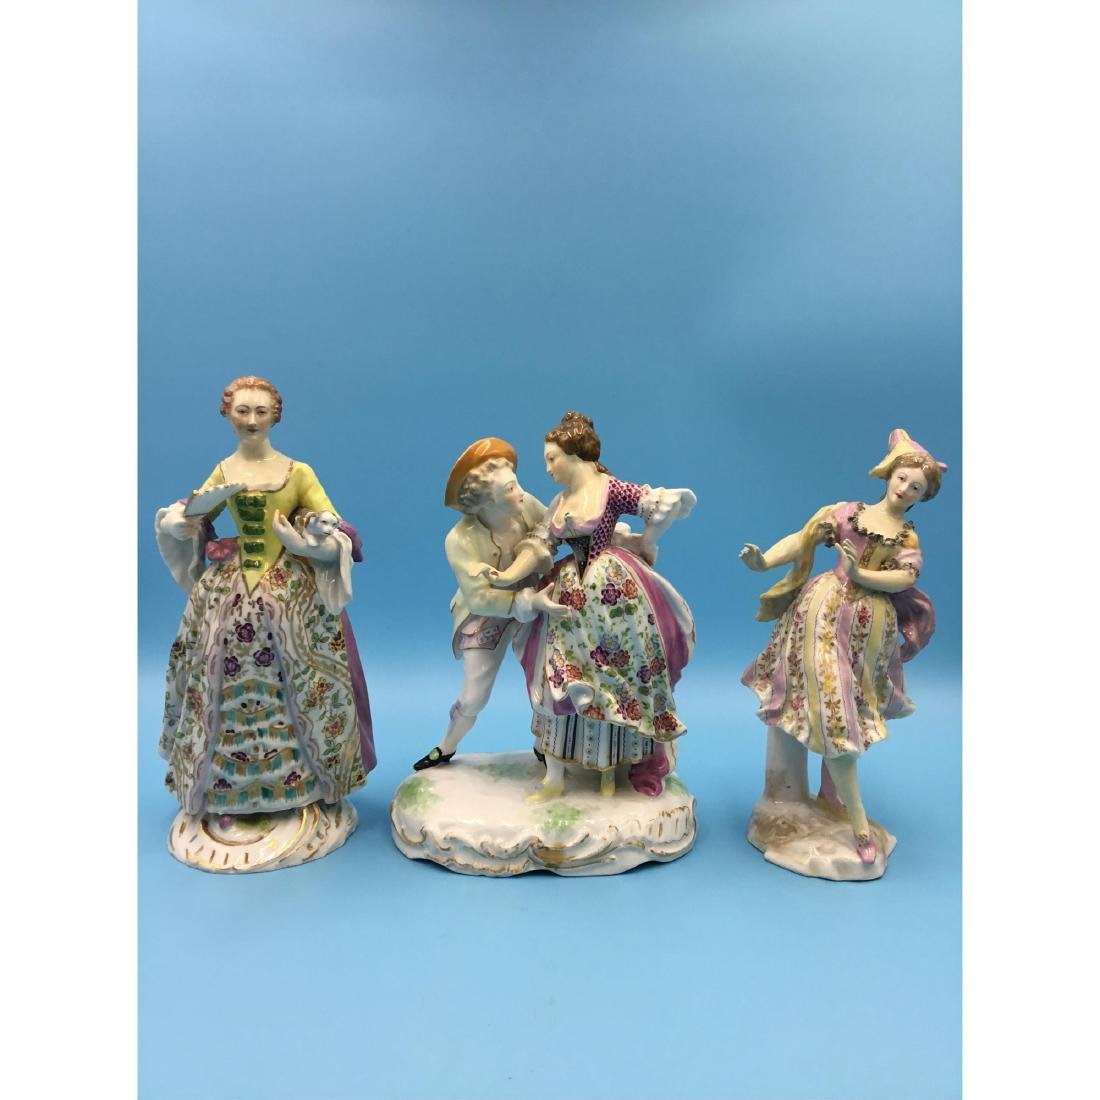 GROUP OF 3 SAMSON FRENCH PORCELAIN FIGURINES